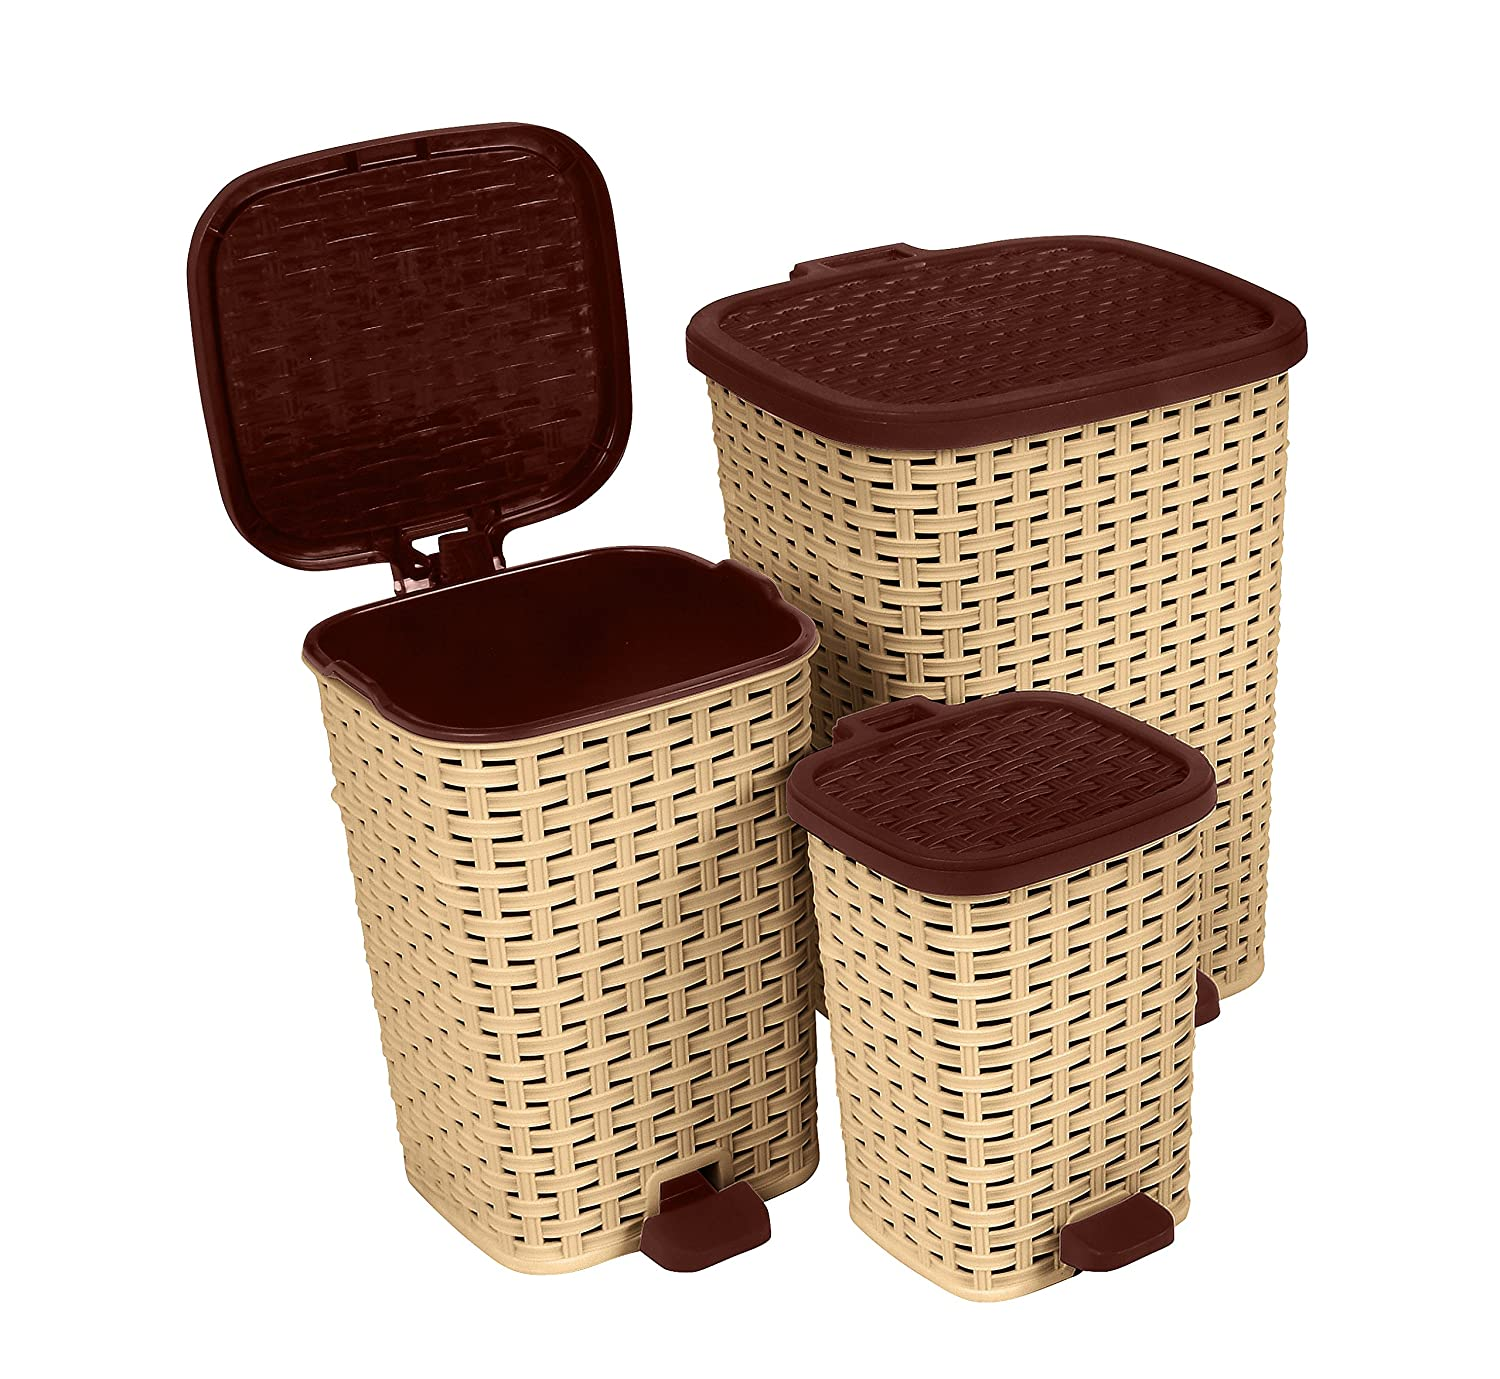 Amazon.com: Rattan (Wicker Style) Trash Can   3 Size Set   1.6 Gal. / 3.1  Gal. / 6.8 Gal. (Beige And Brown): Home U0026 Kitchen